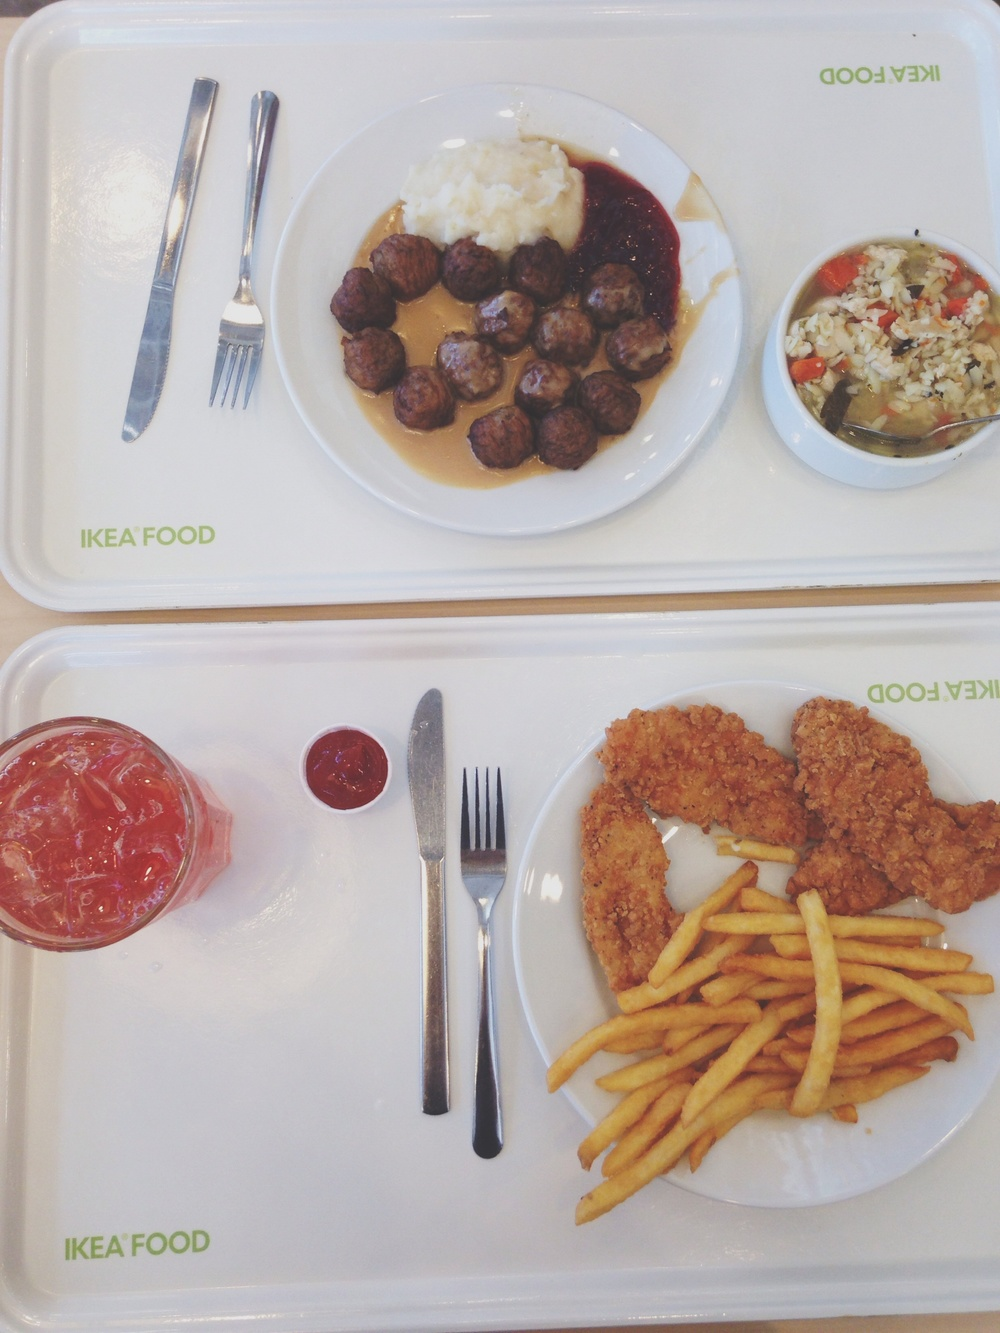 Last weekend, Y and I went to IKEA to pick up a few things and enjoyed this simple (&cheap) lunch.